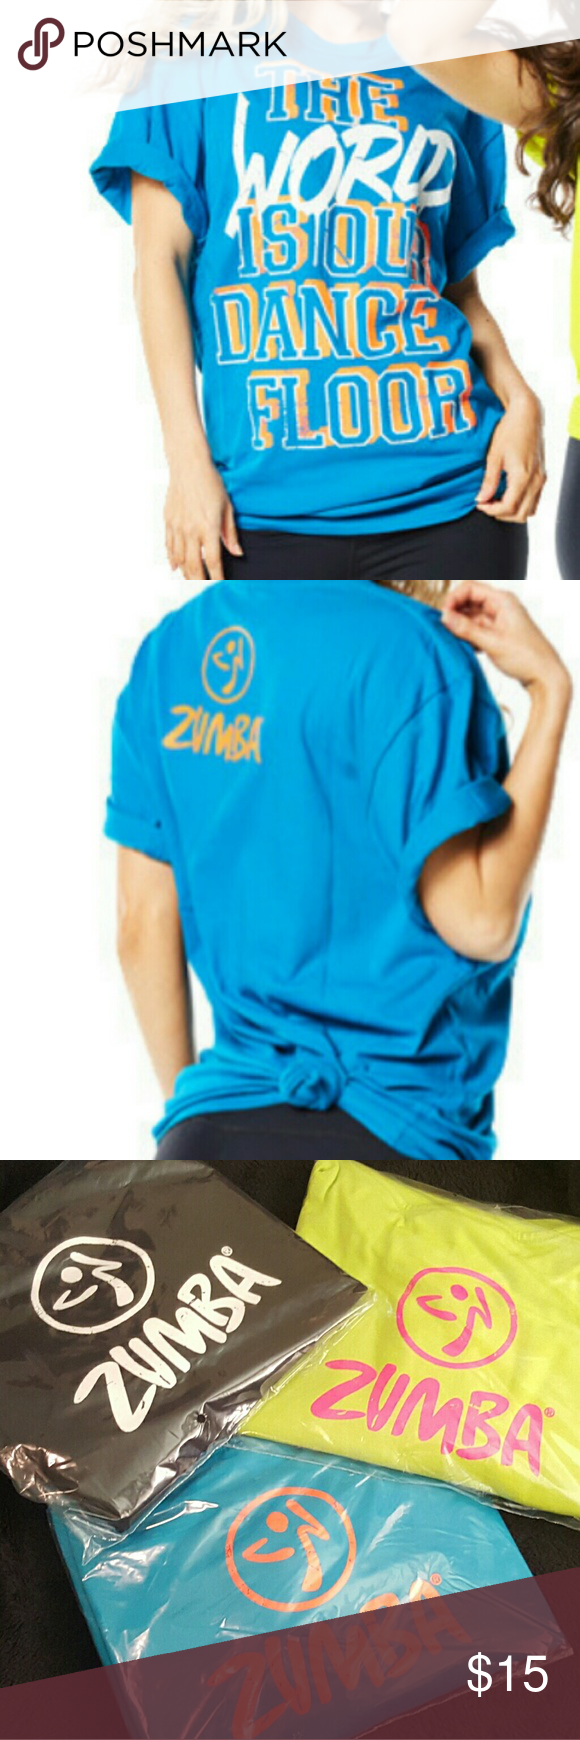 241e66fdc Zumba t-shirts sale The World is our Dance floor One size fits the most  zumba Tops Tees - Short Sleeve